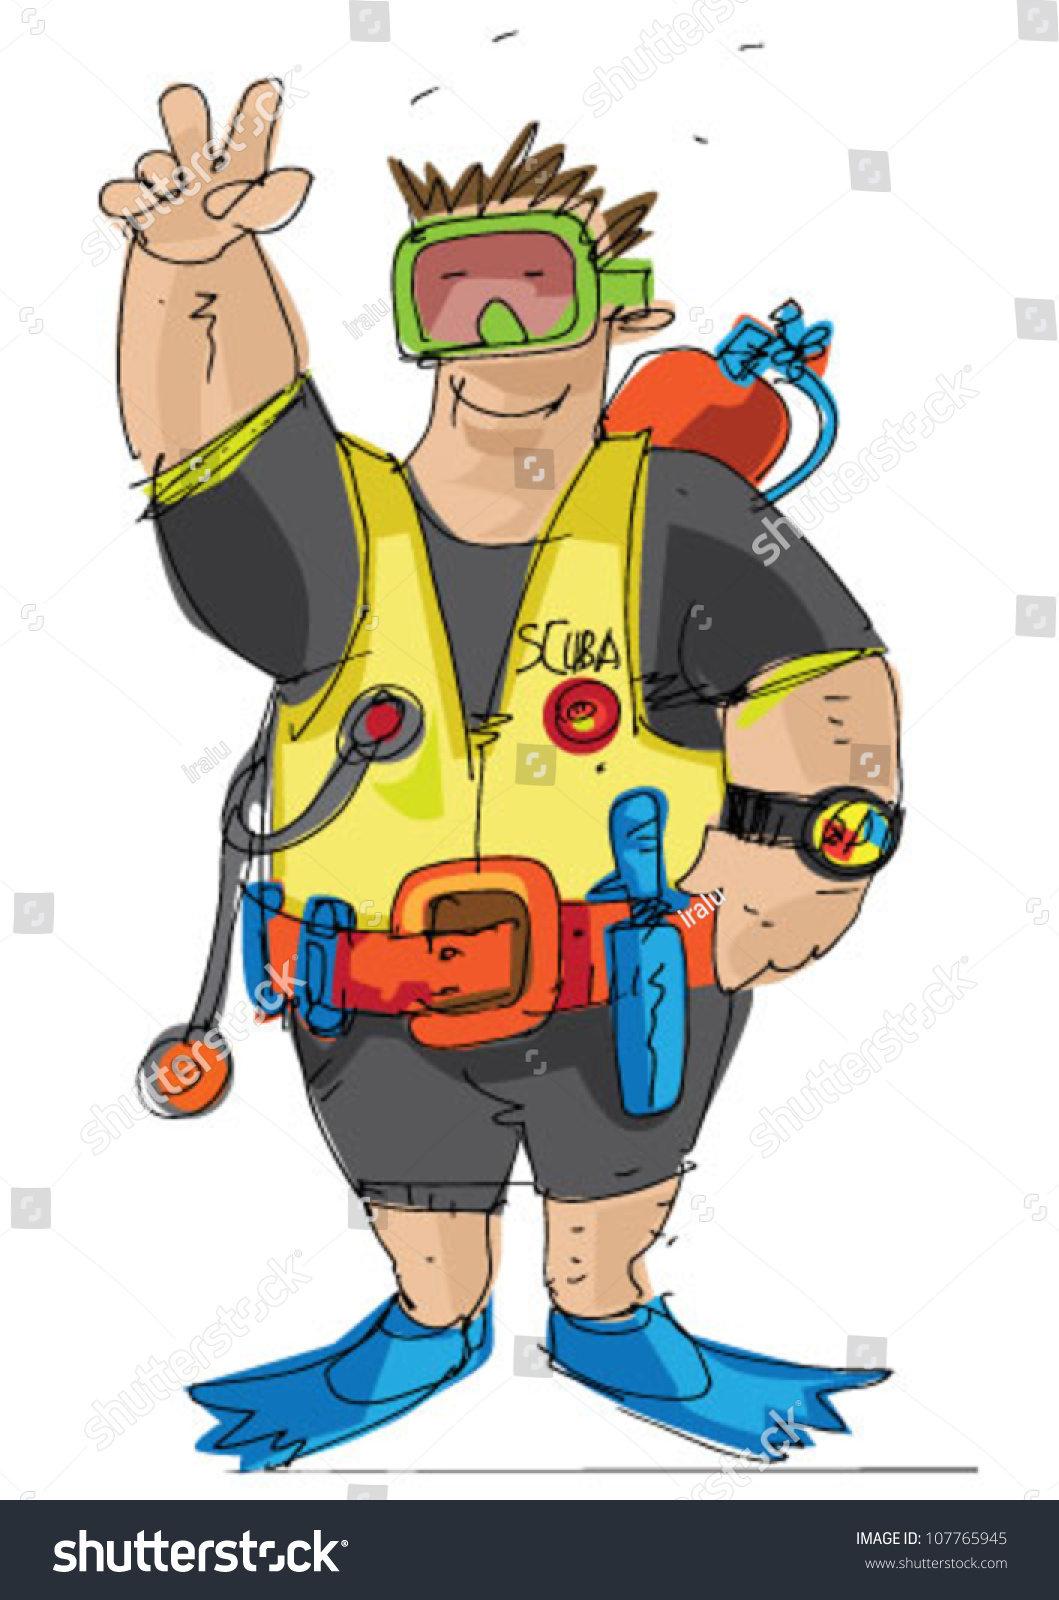 Scuba Diver Cartoon